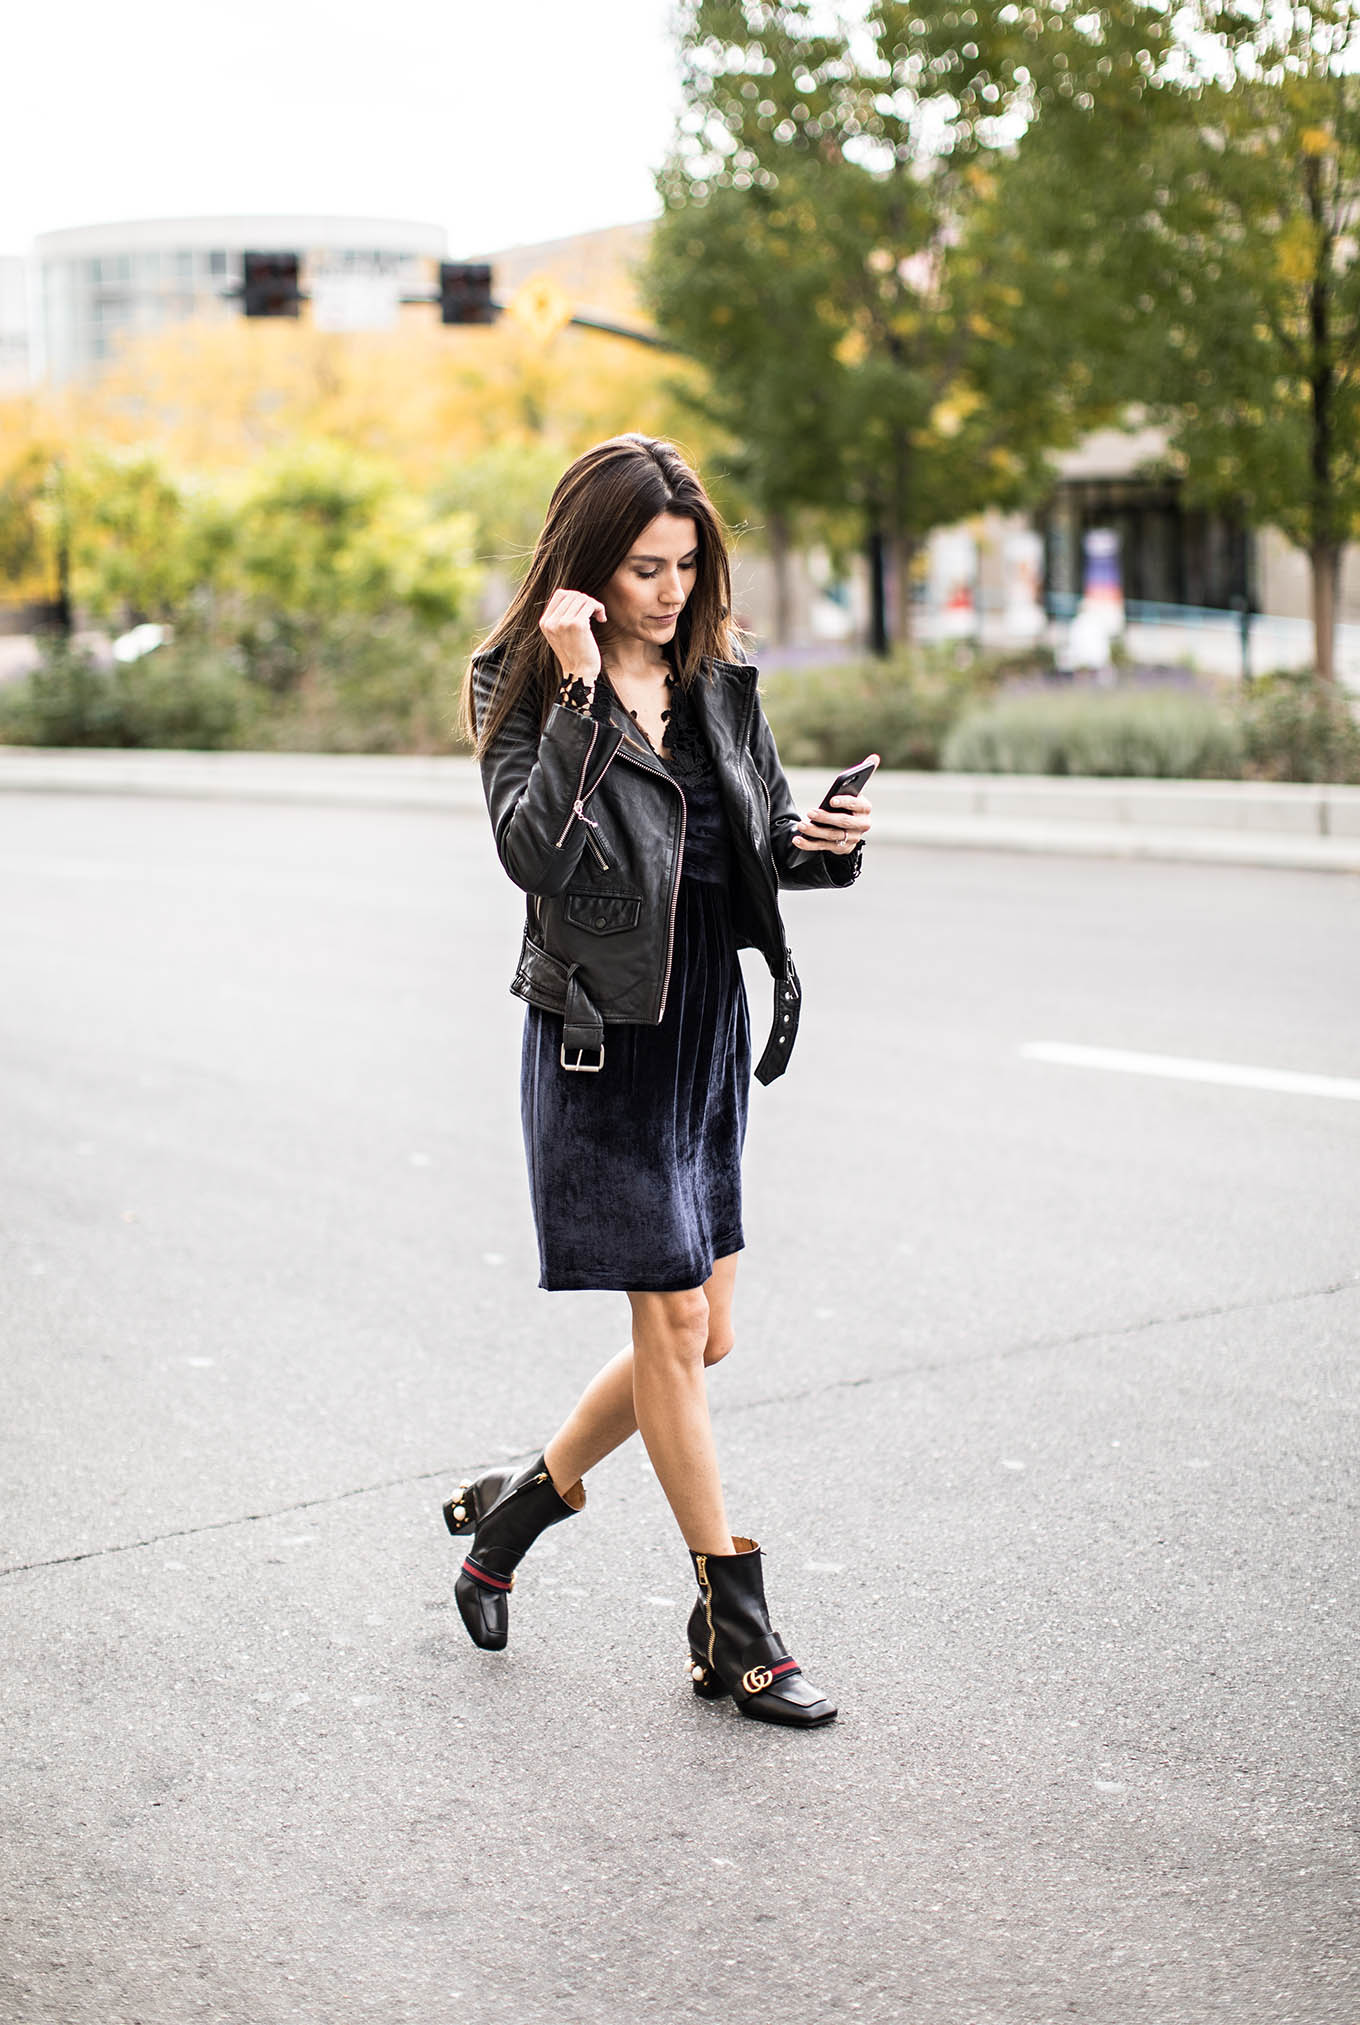 4 pieces to transition your dressier dresses for any occasion